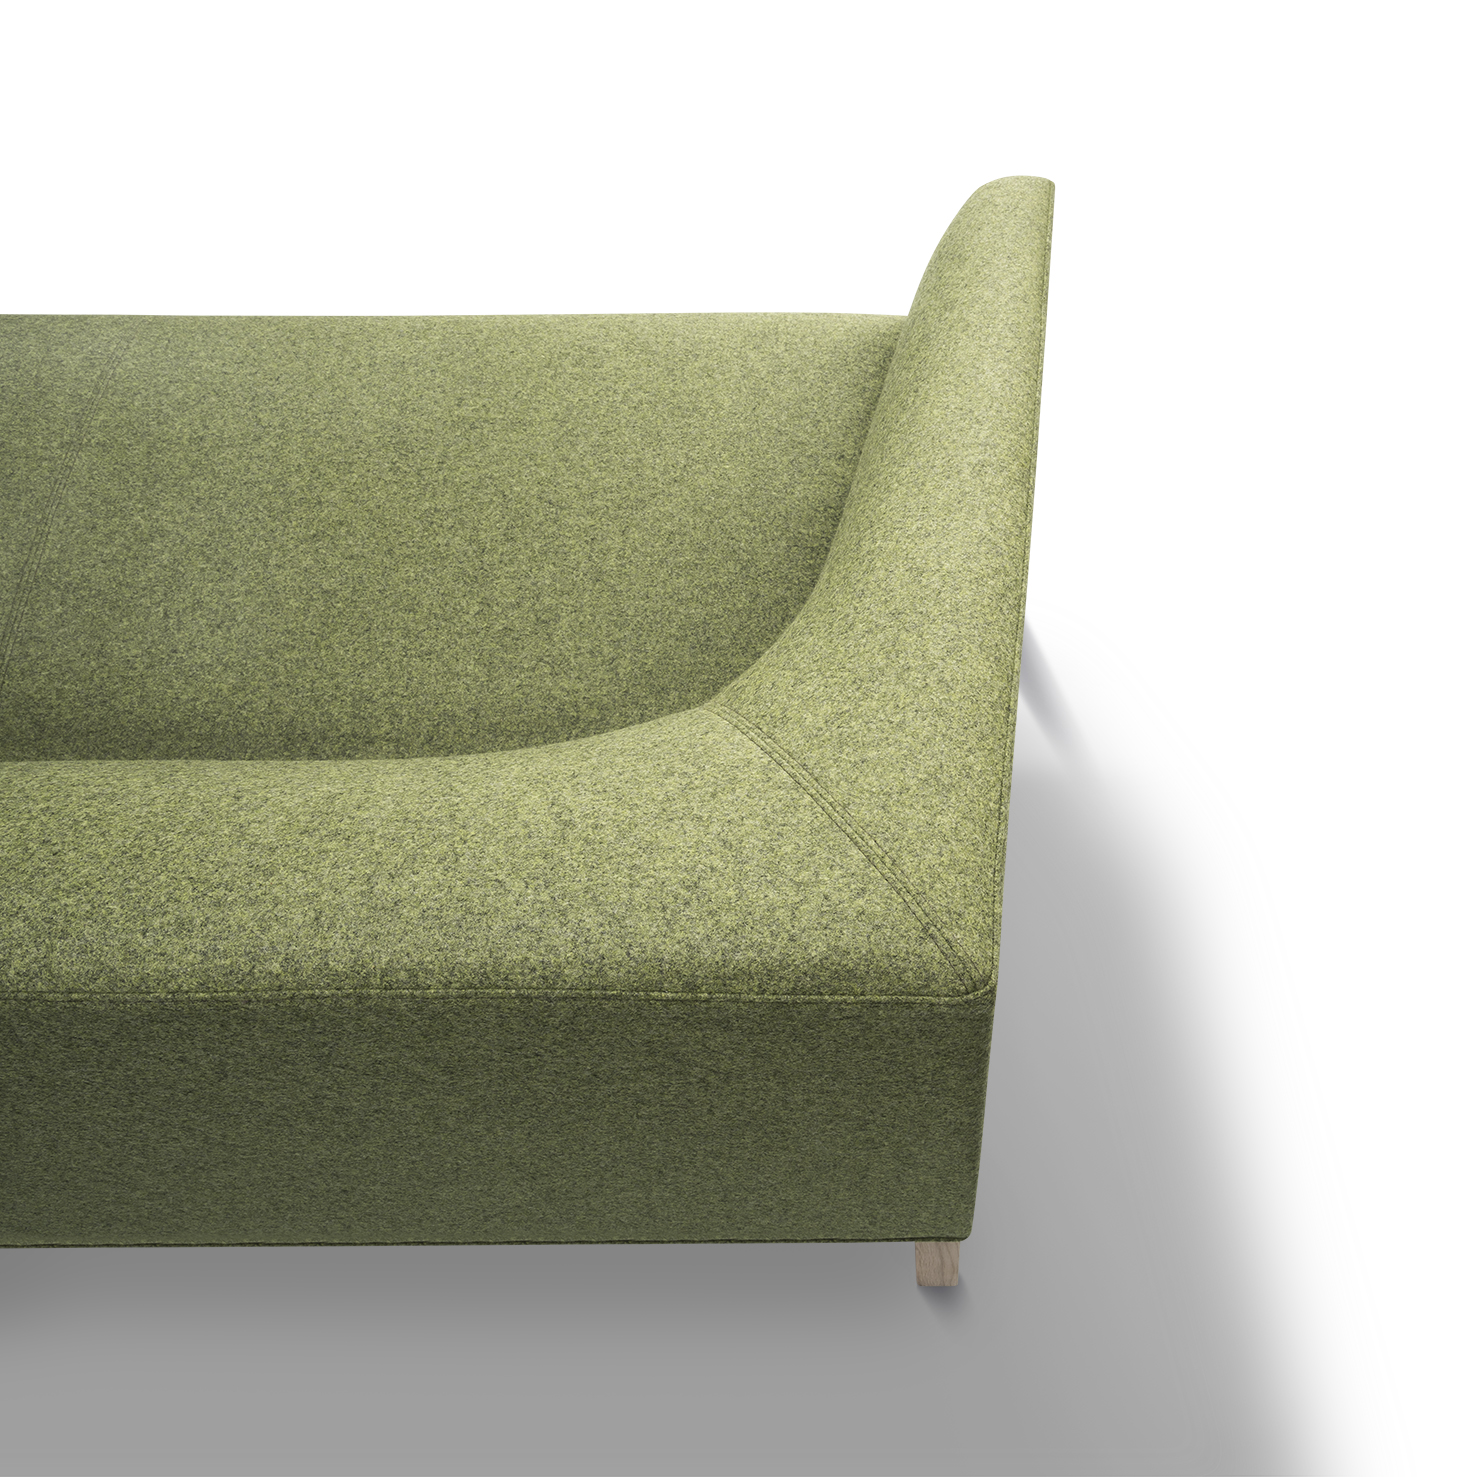 3 plus 2 seater sofa offers best slipcovers for pets kile | collection by fredericia ...